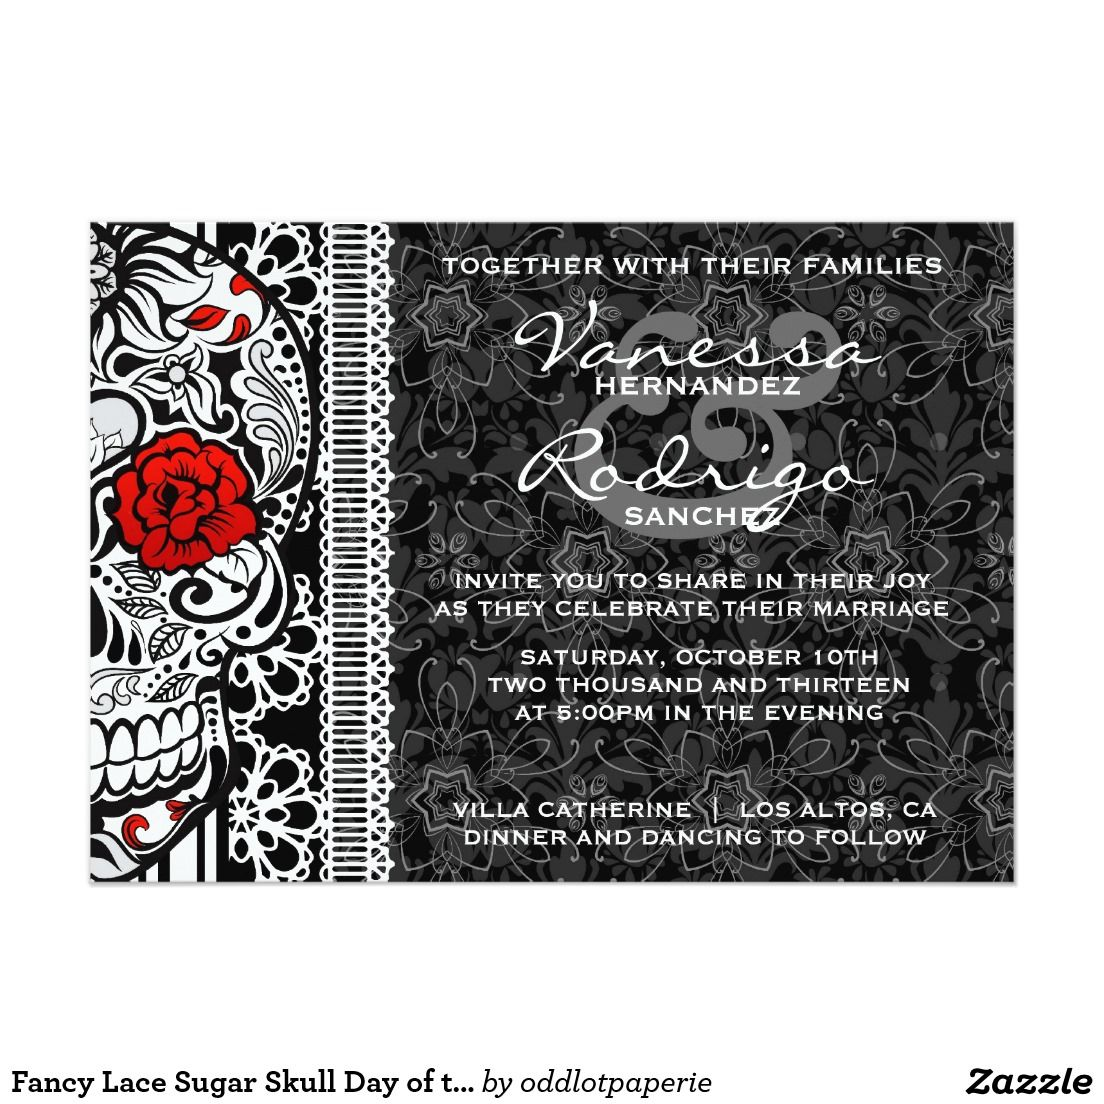 Fancy Lace Sugar Skull Day Of The Dead Invite Sugar Skulls Lace